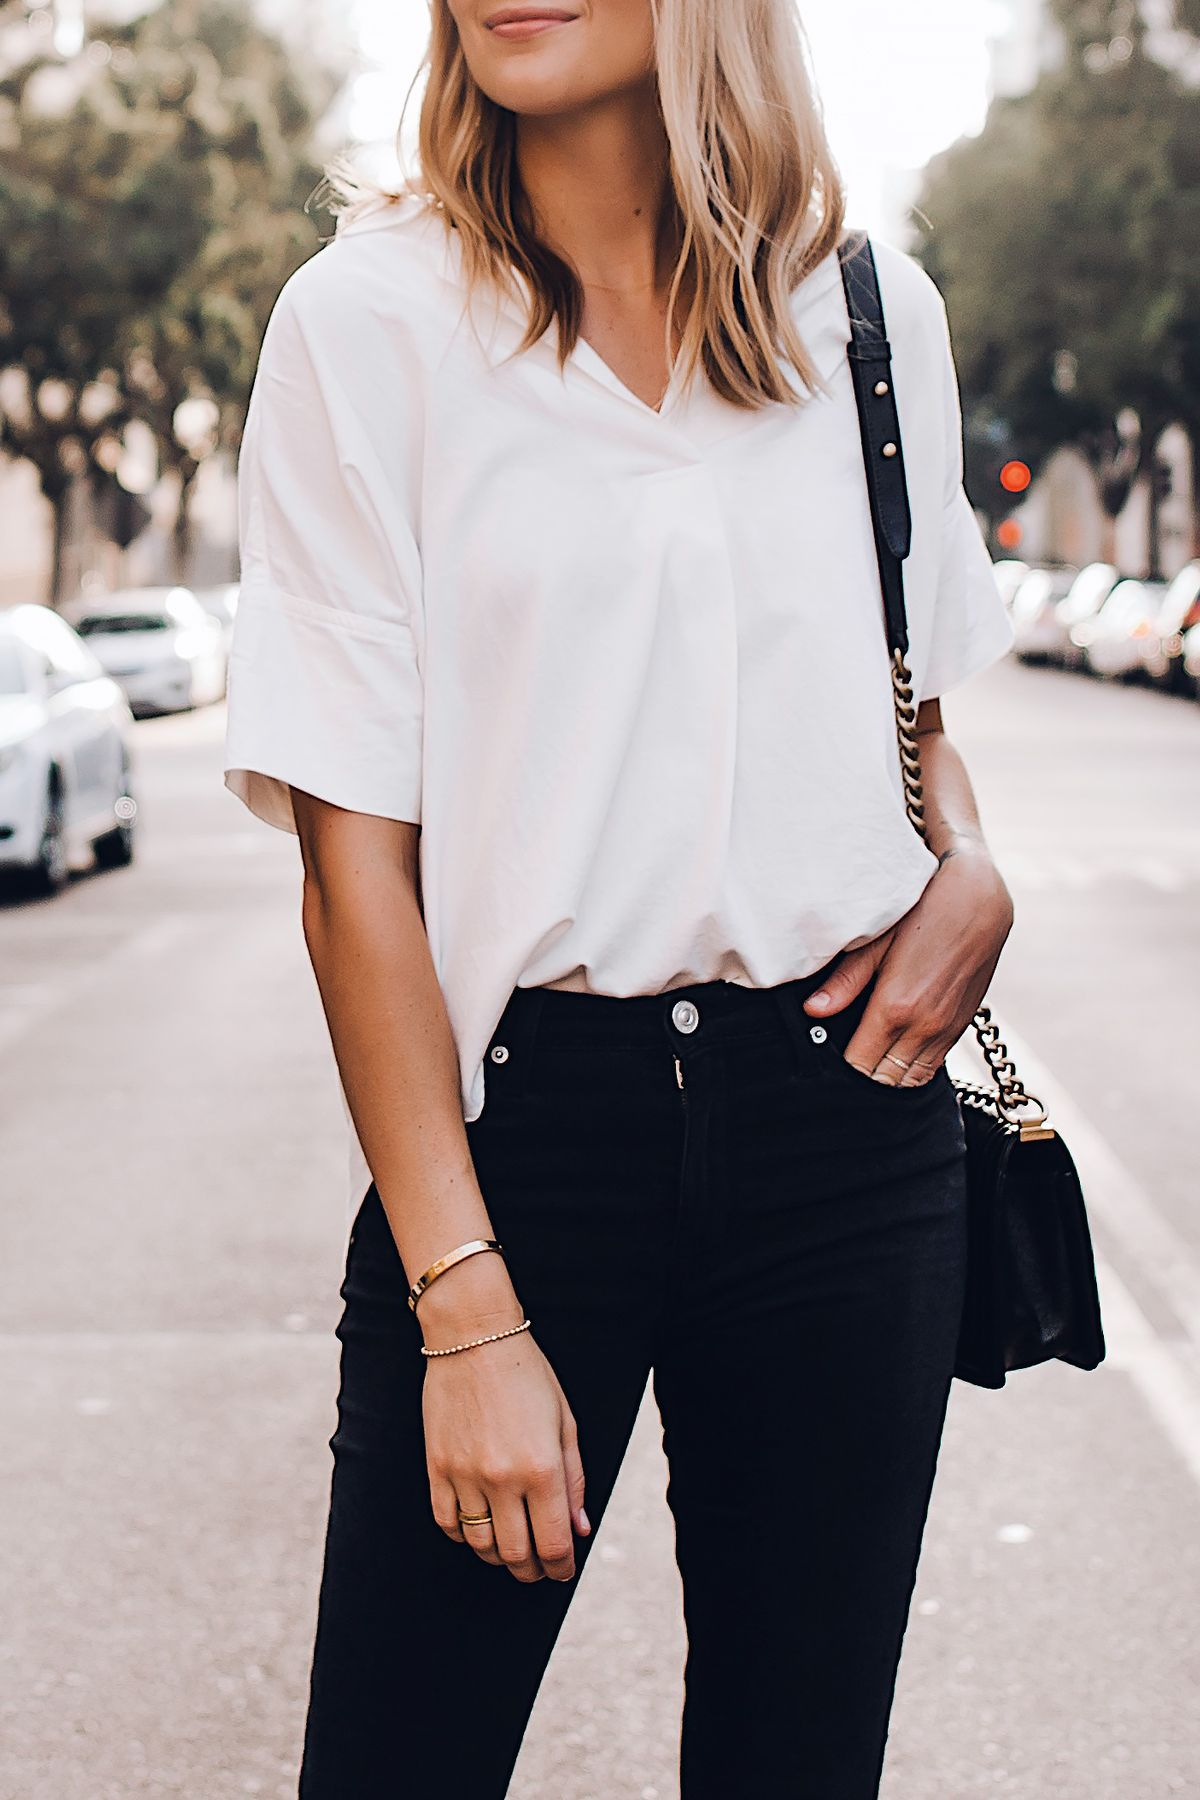 Blonde Woman Wearing Madewell Short Sleeve White Shirt Black Jeans Fashion Jackson San Diego White Shirt Black Jeans White Shirt Outfits White Shirt And Jeans